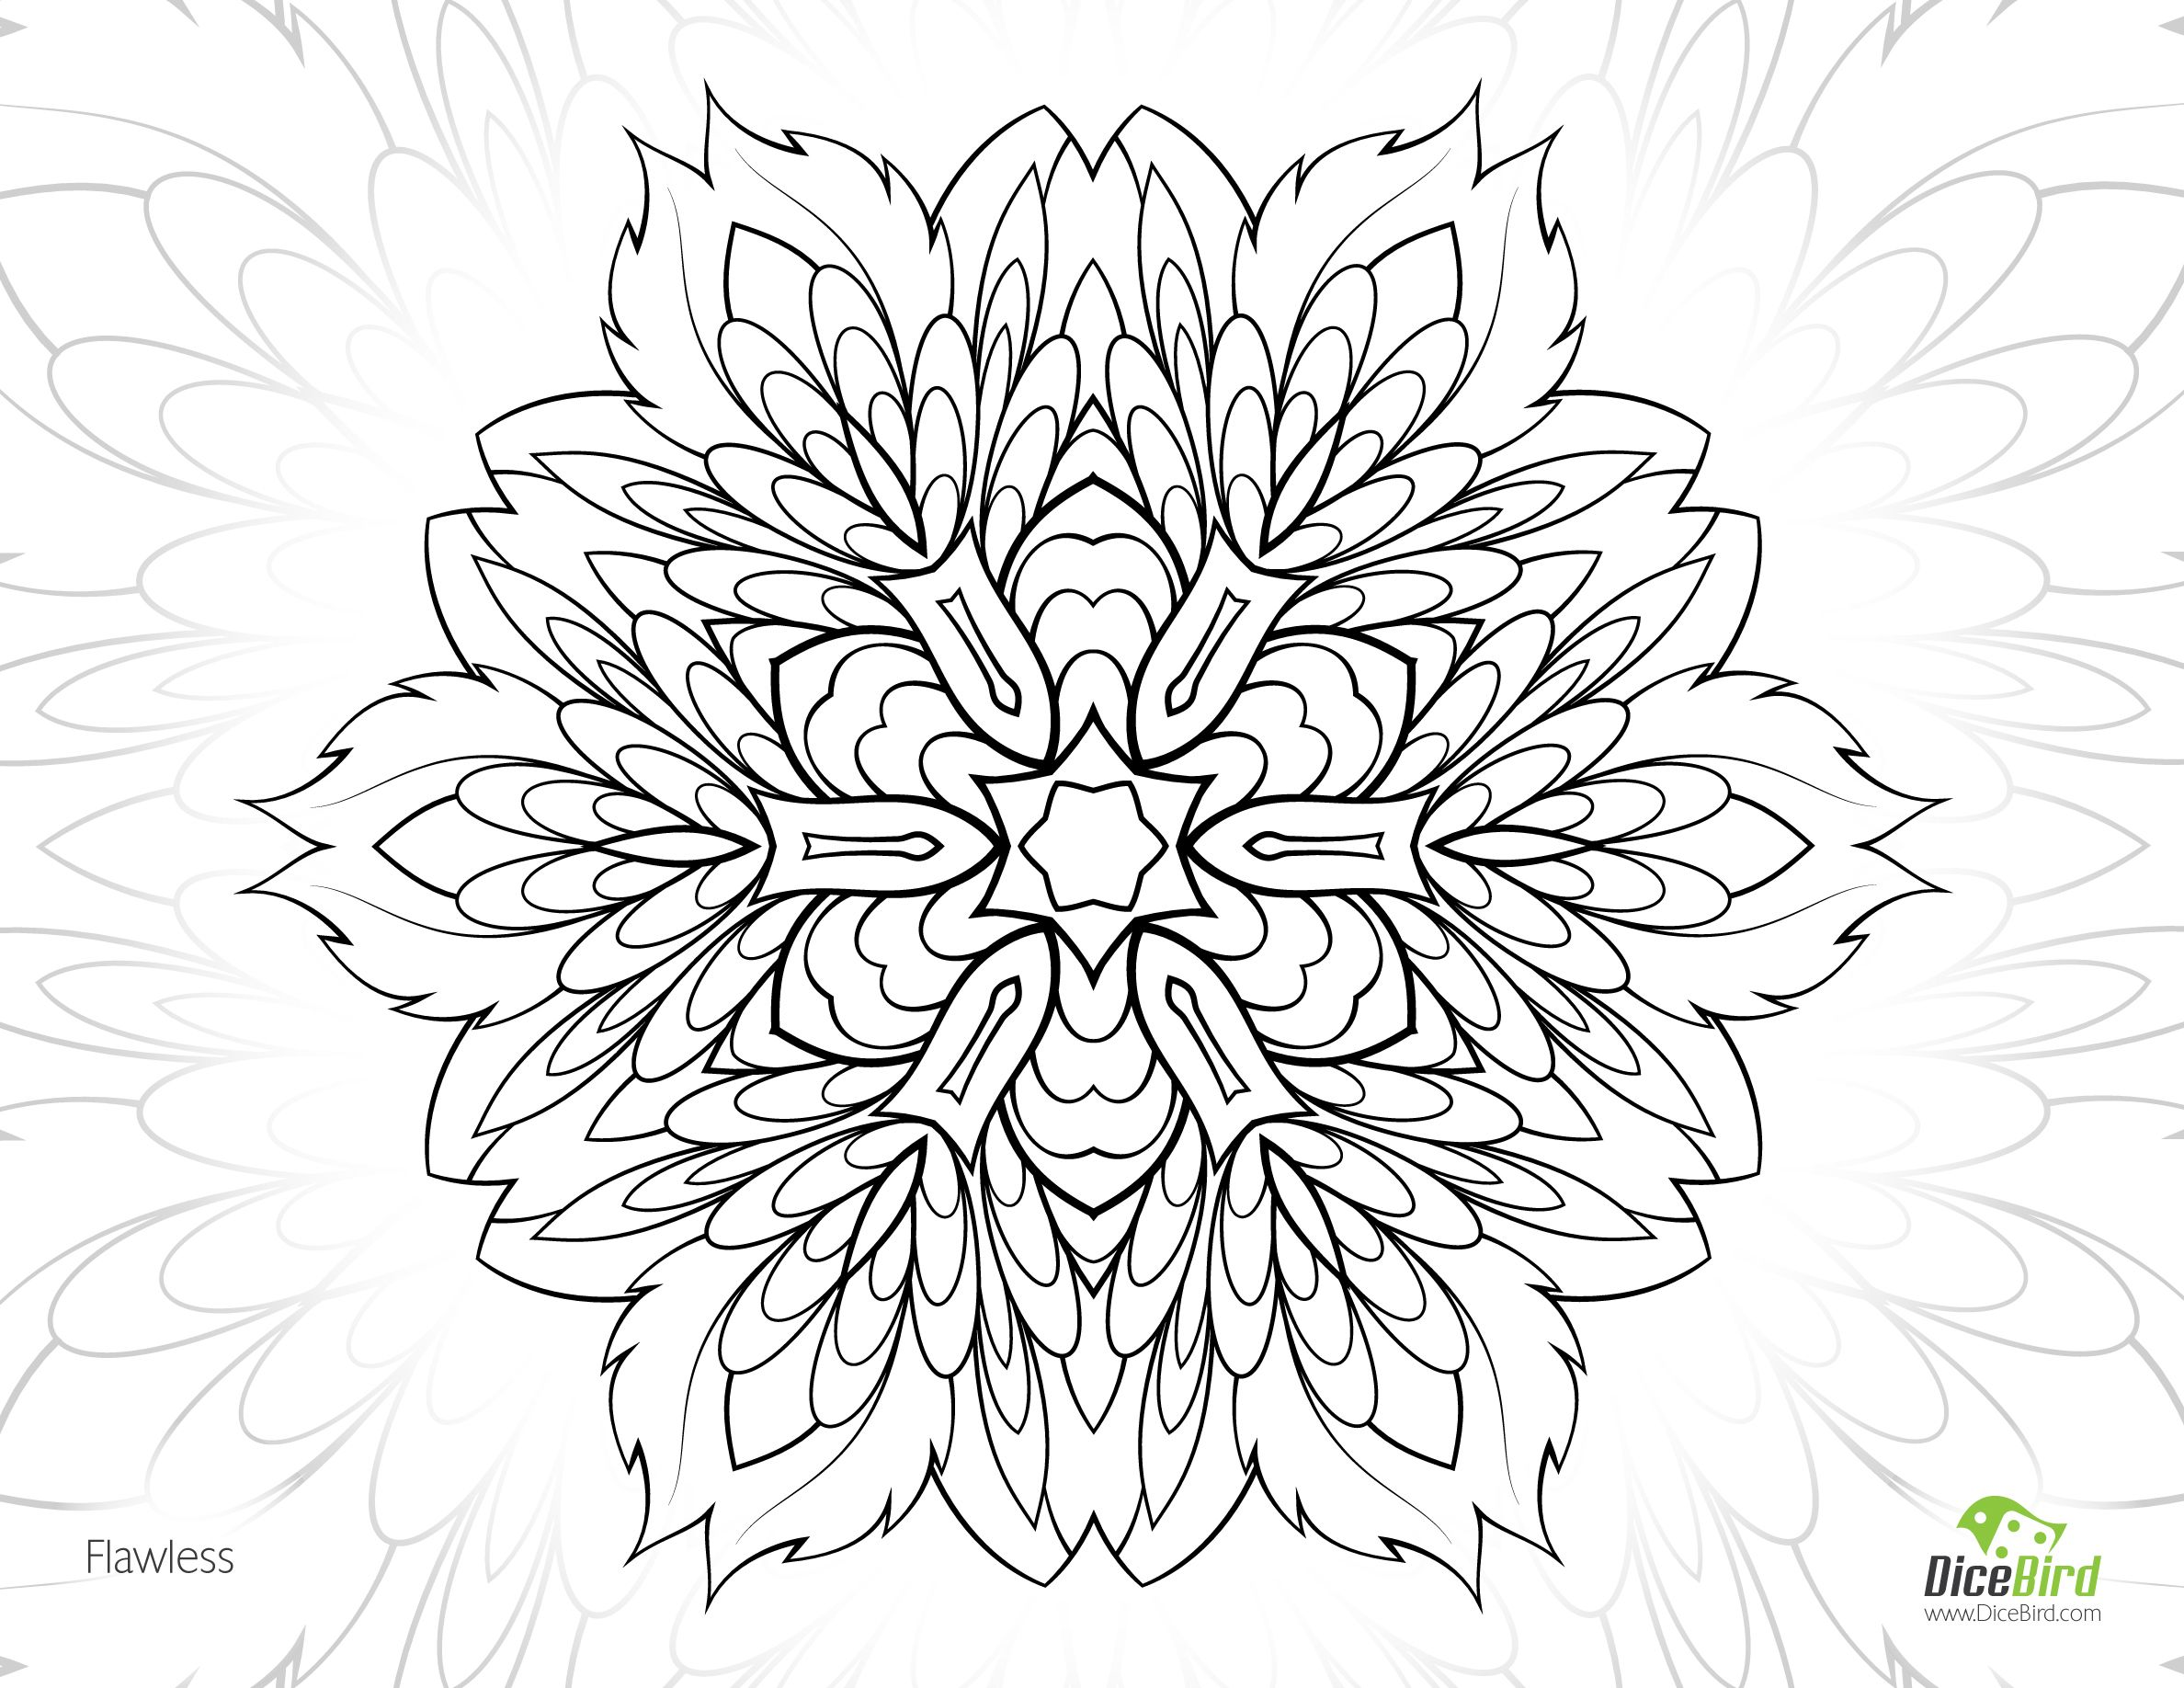 Flawless Flower Free Coloring Pages For Adults To Print Mandala